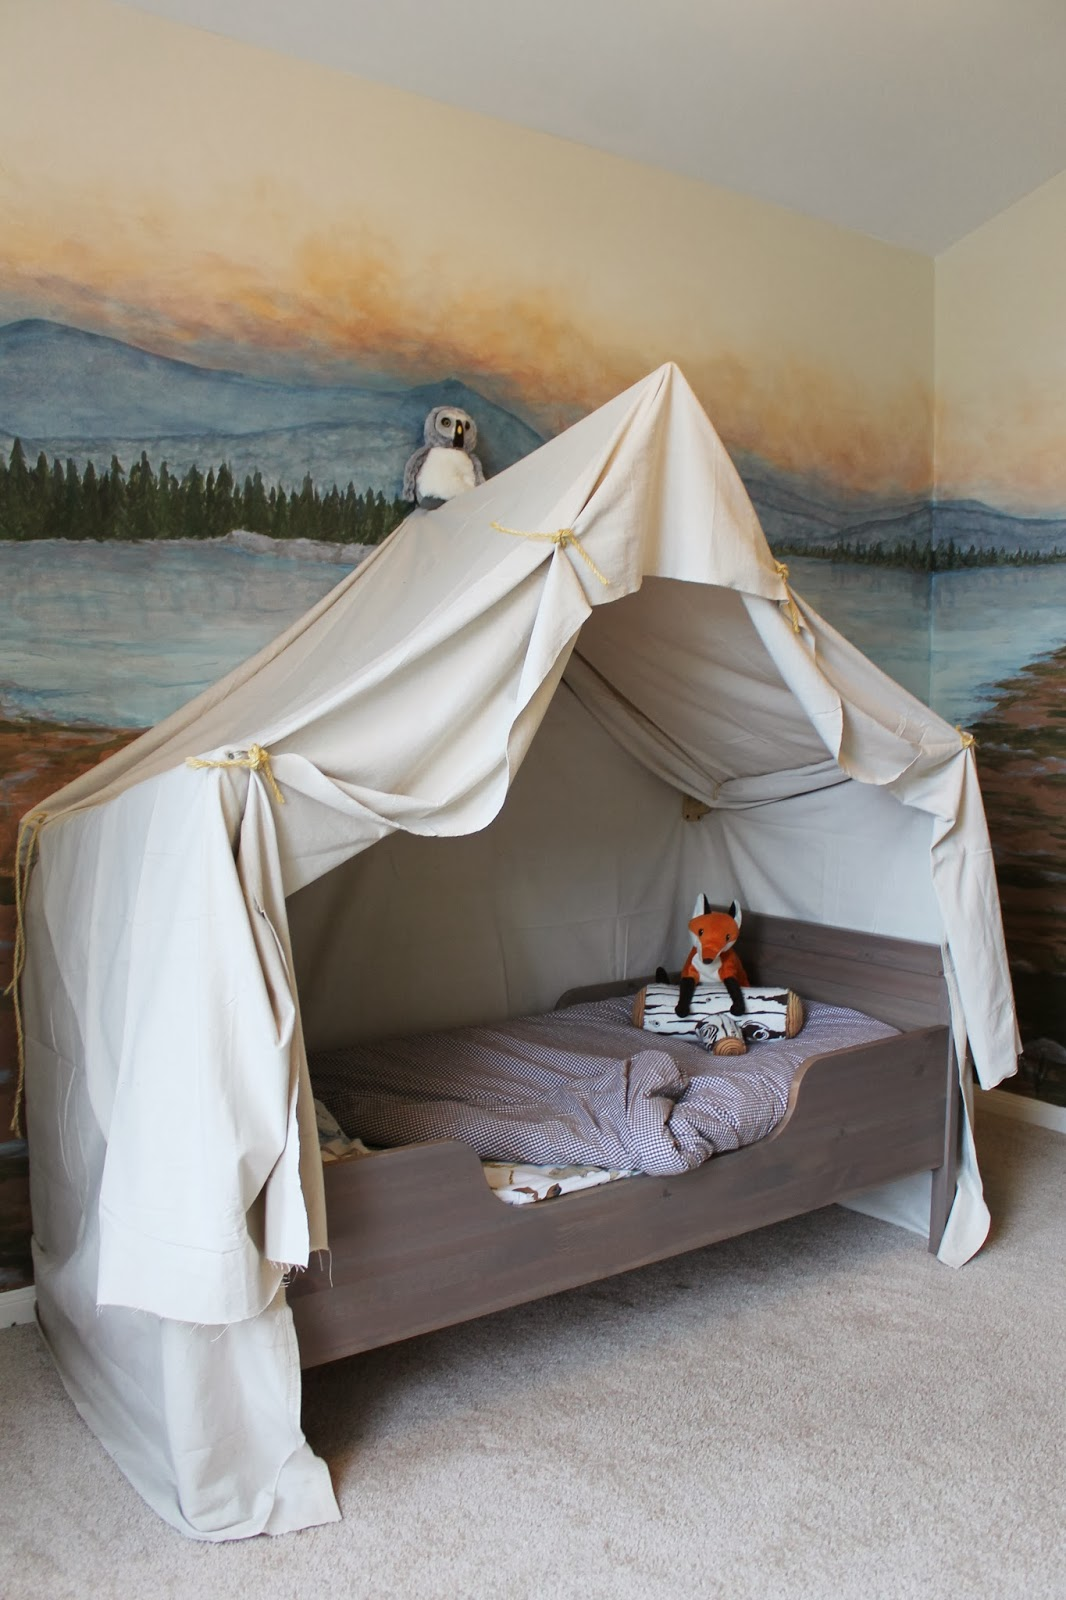 Build an indoor c&ing tent bed canopy for kids | The Ragged Wren on Remodelaholic. & Remodelaholic | Camping Tent Bed in a Kidu0027s Woodland Bedroom